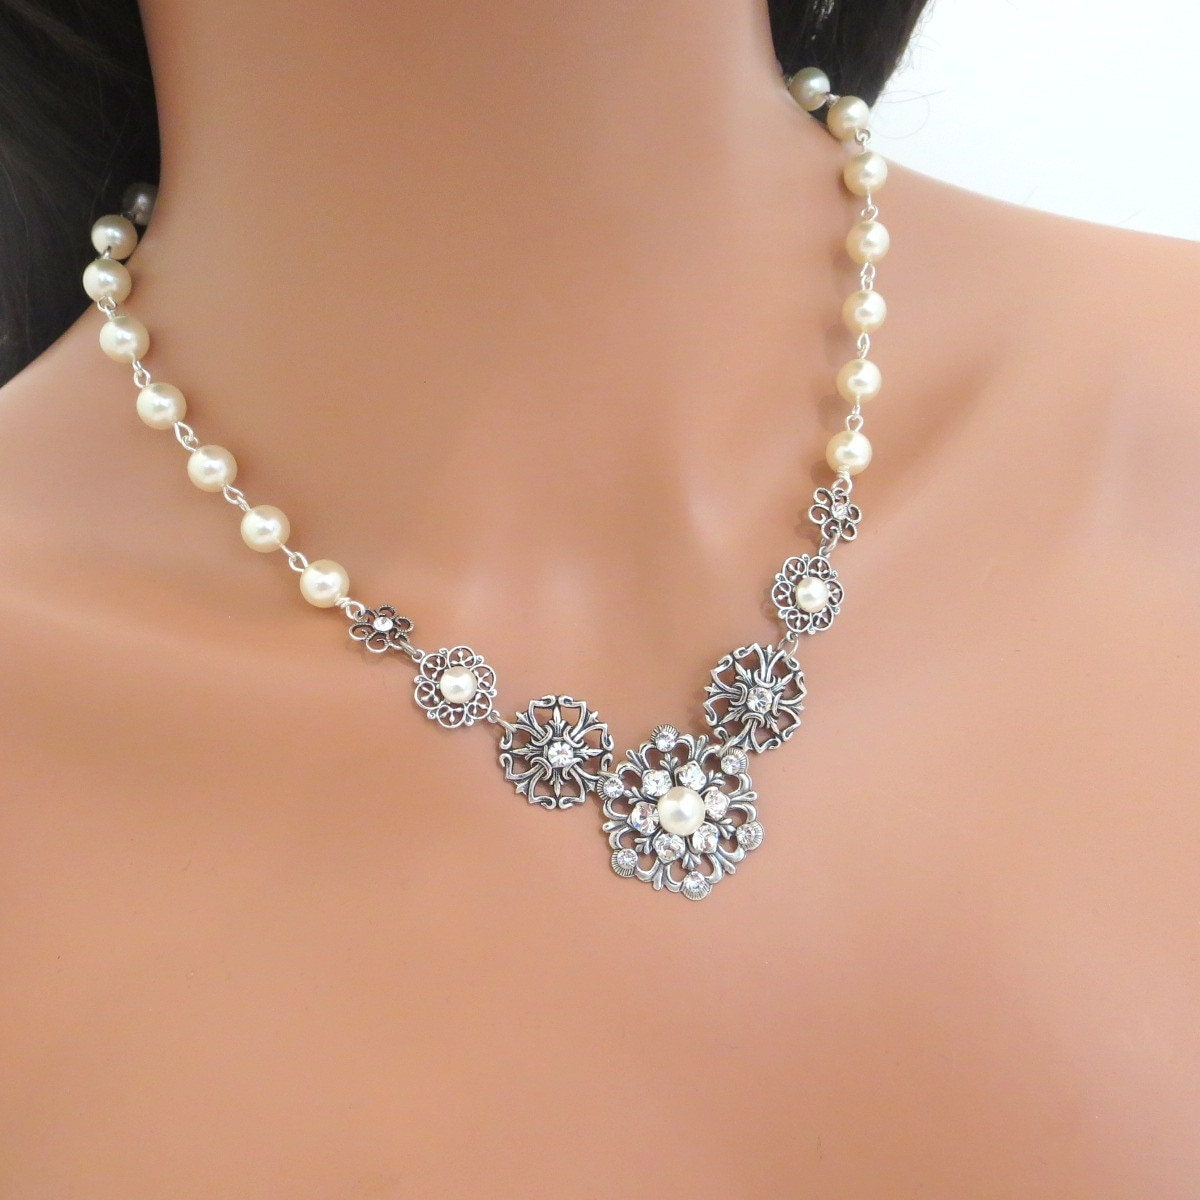 Pearl Necklace Styles: Bridal Pearl Necklace Vintage Style Necklace Wedding